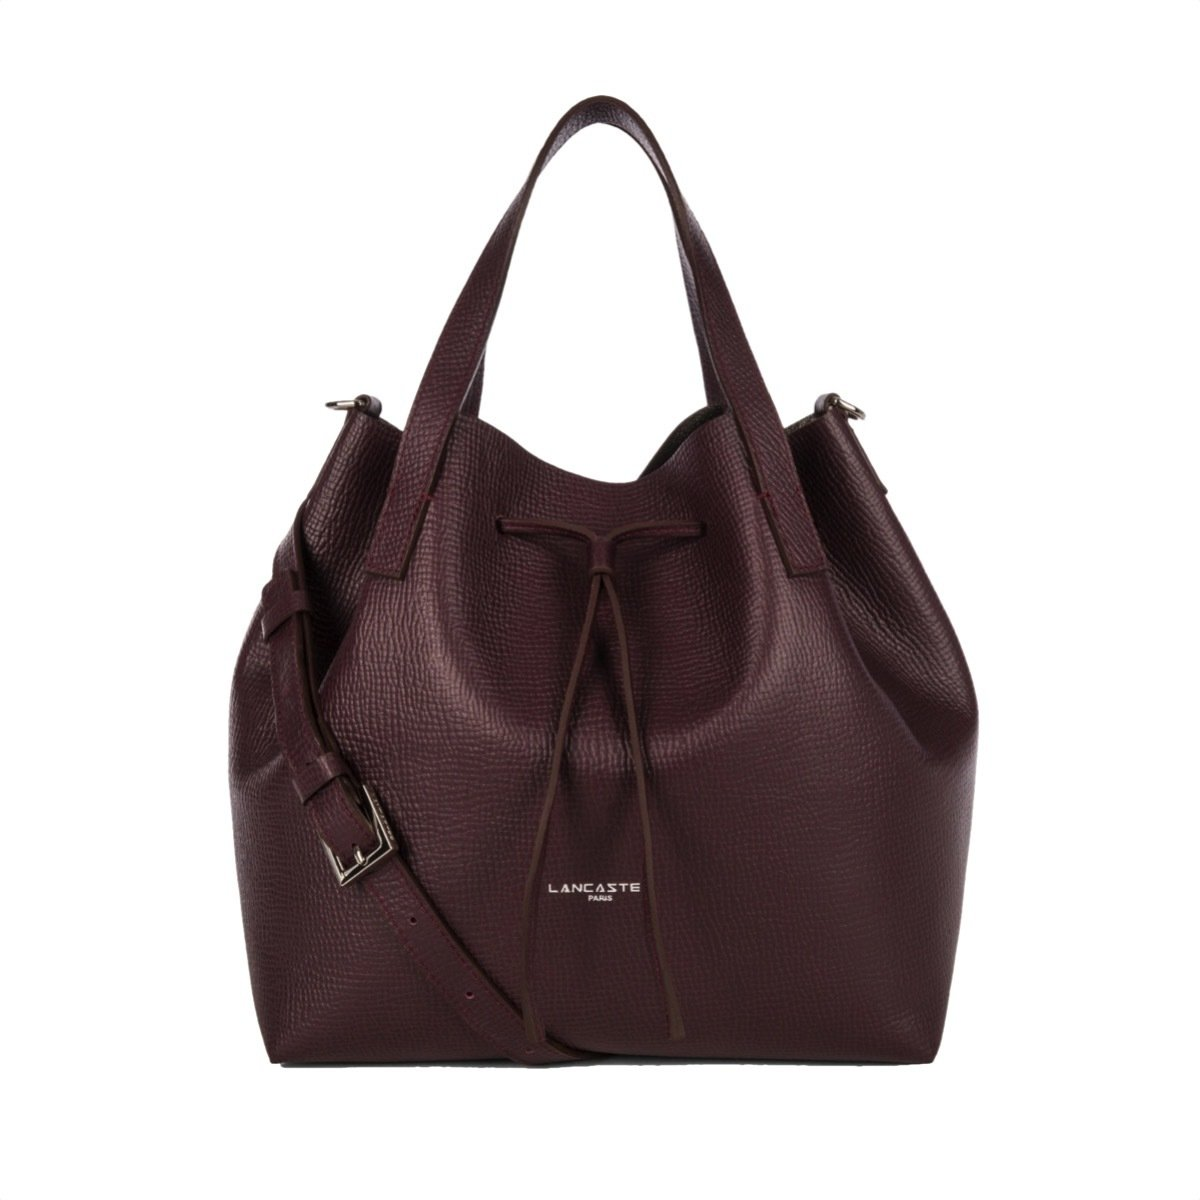 LANCASTER - Large Bucket Bag - Bordeaux in Gris Metal